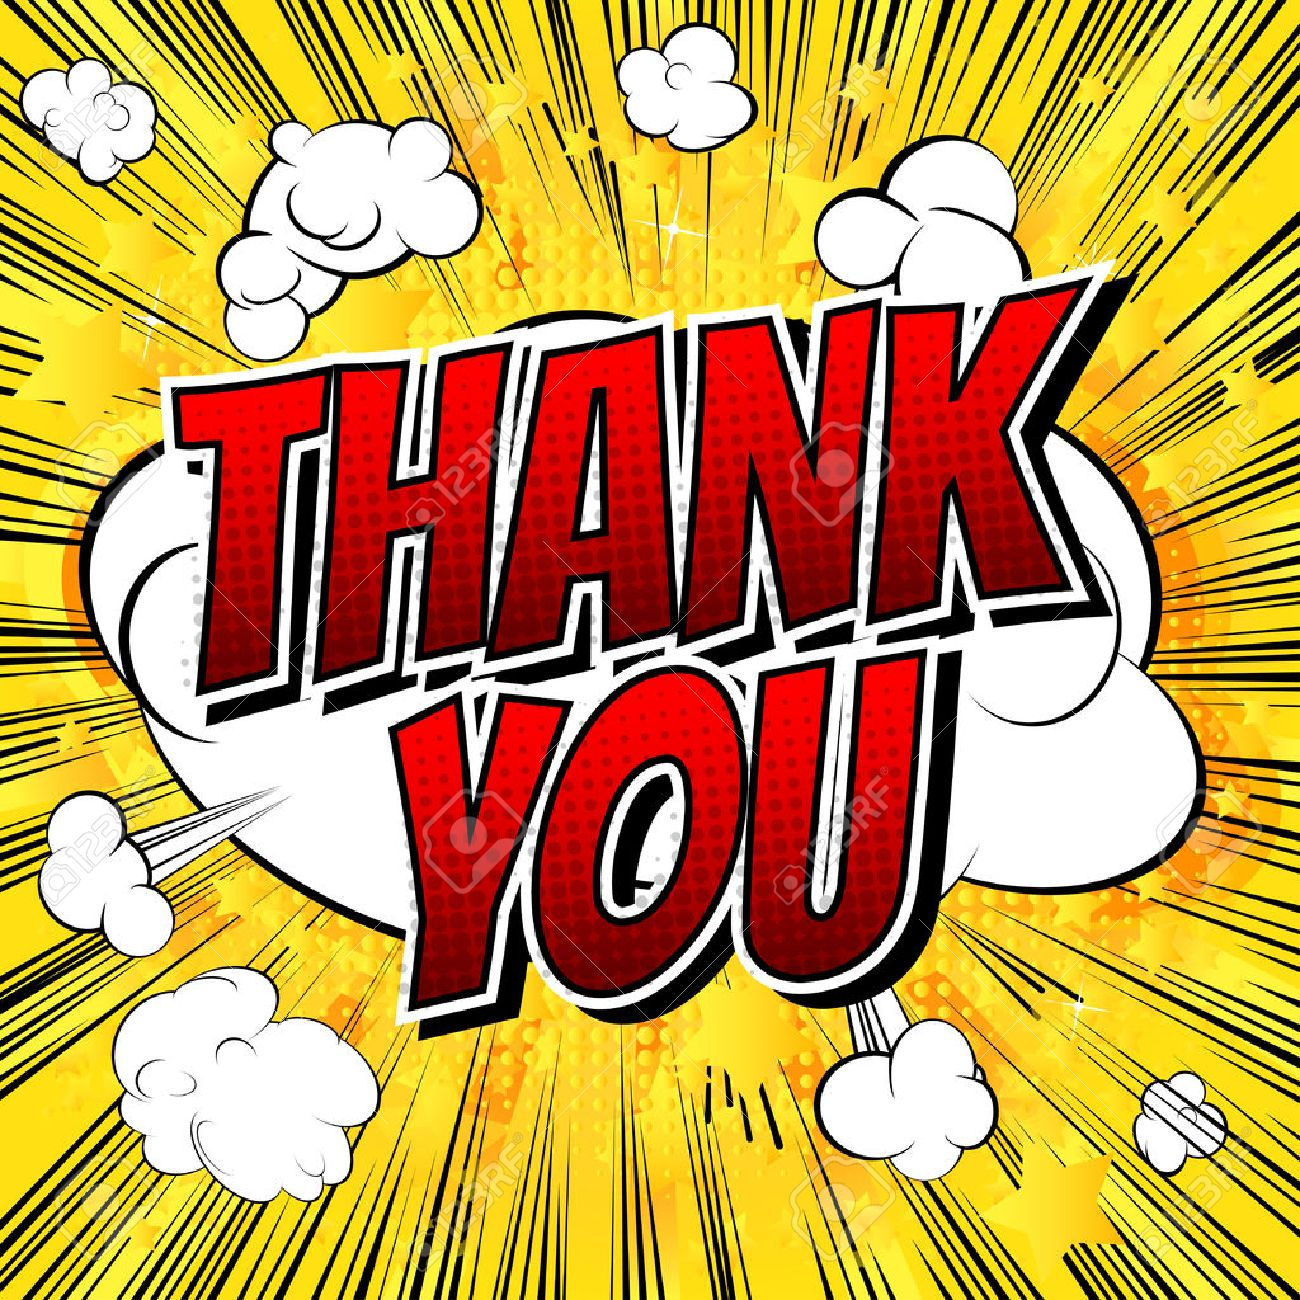 thank you comic book style word on comic book abstract background